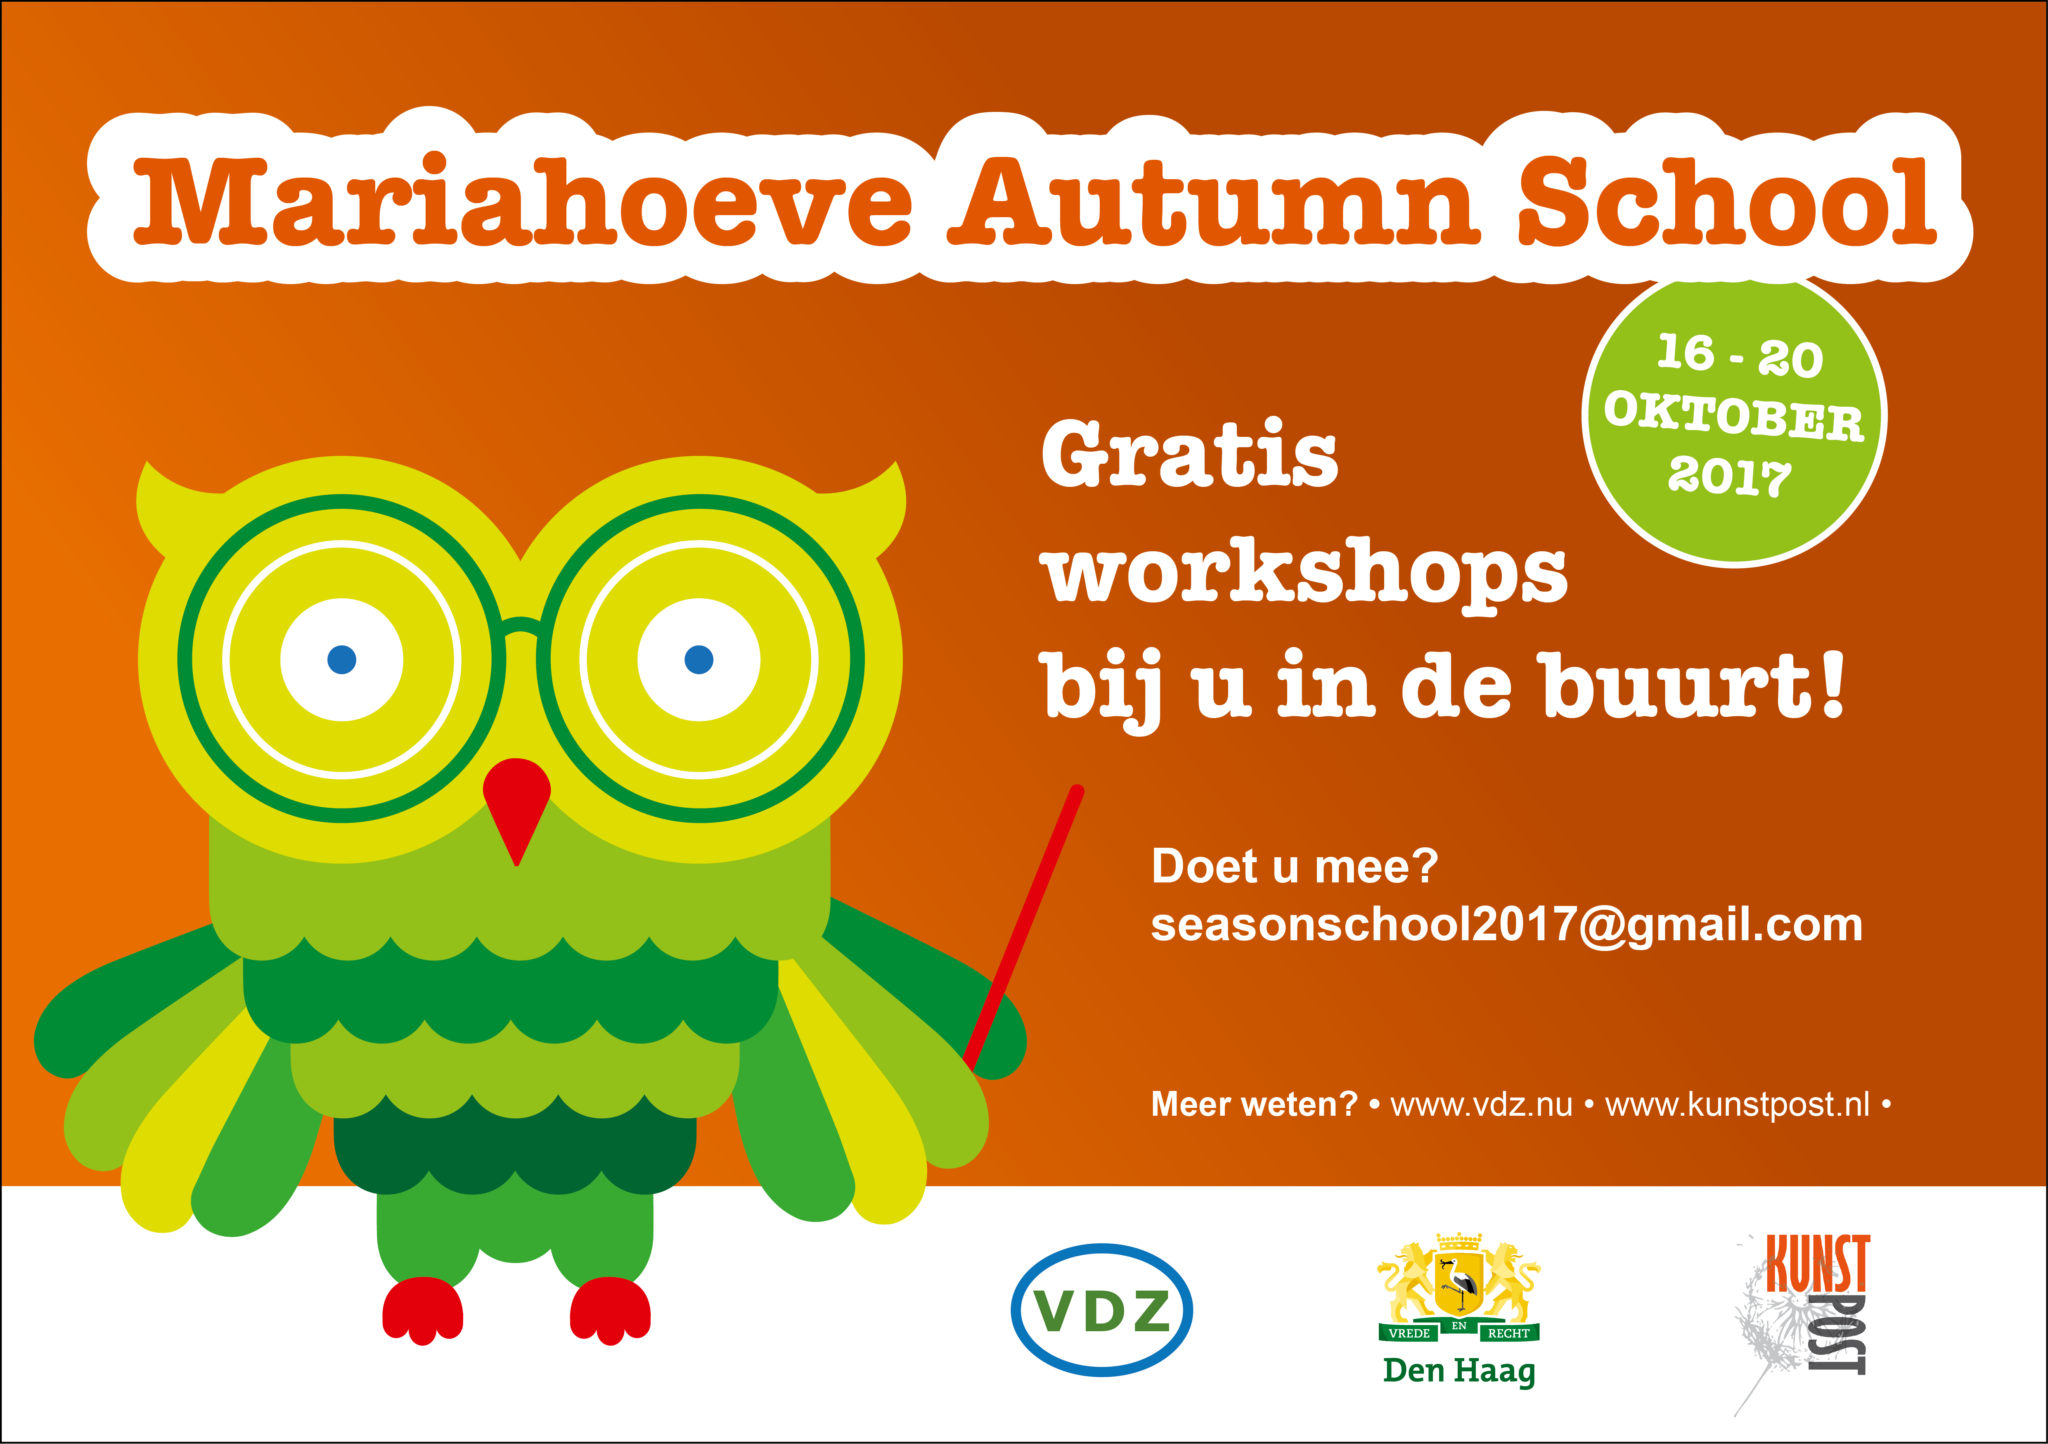 Mariahoeve Autumn School in oktober 2017